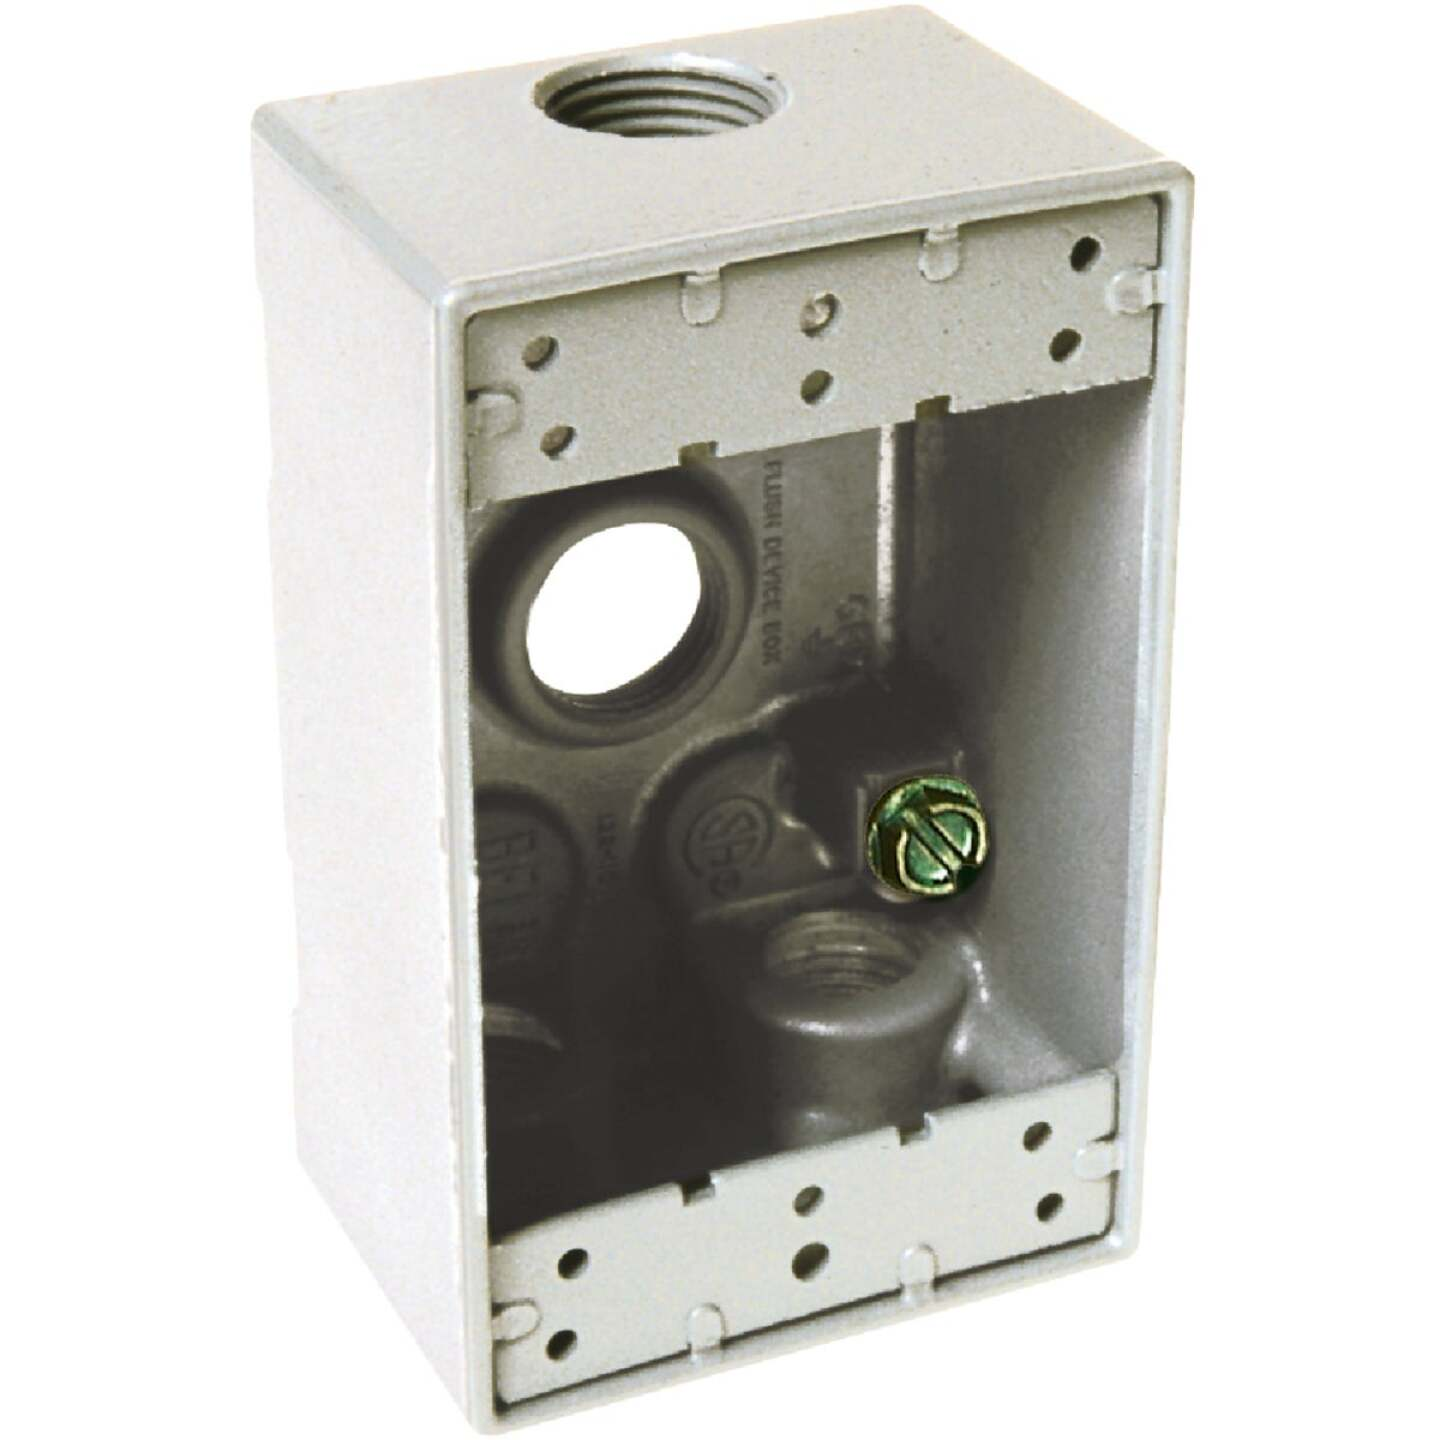 Hubbell Single Gang 1/2 In. 4-Outlet White Aluminum Weatherproof Outdoor Outlet Box Image 1